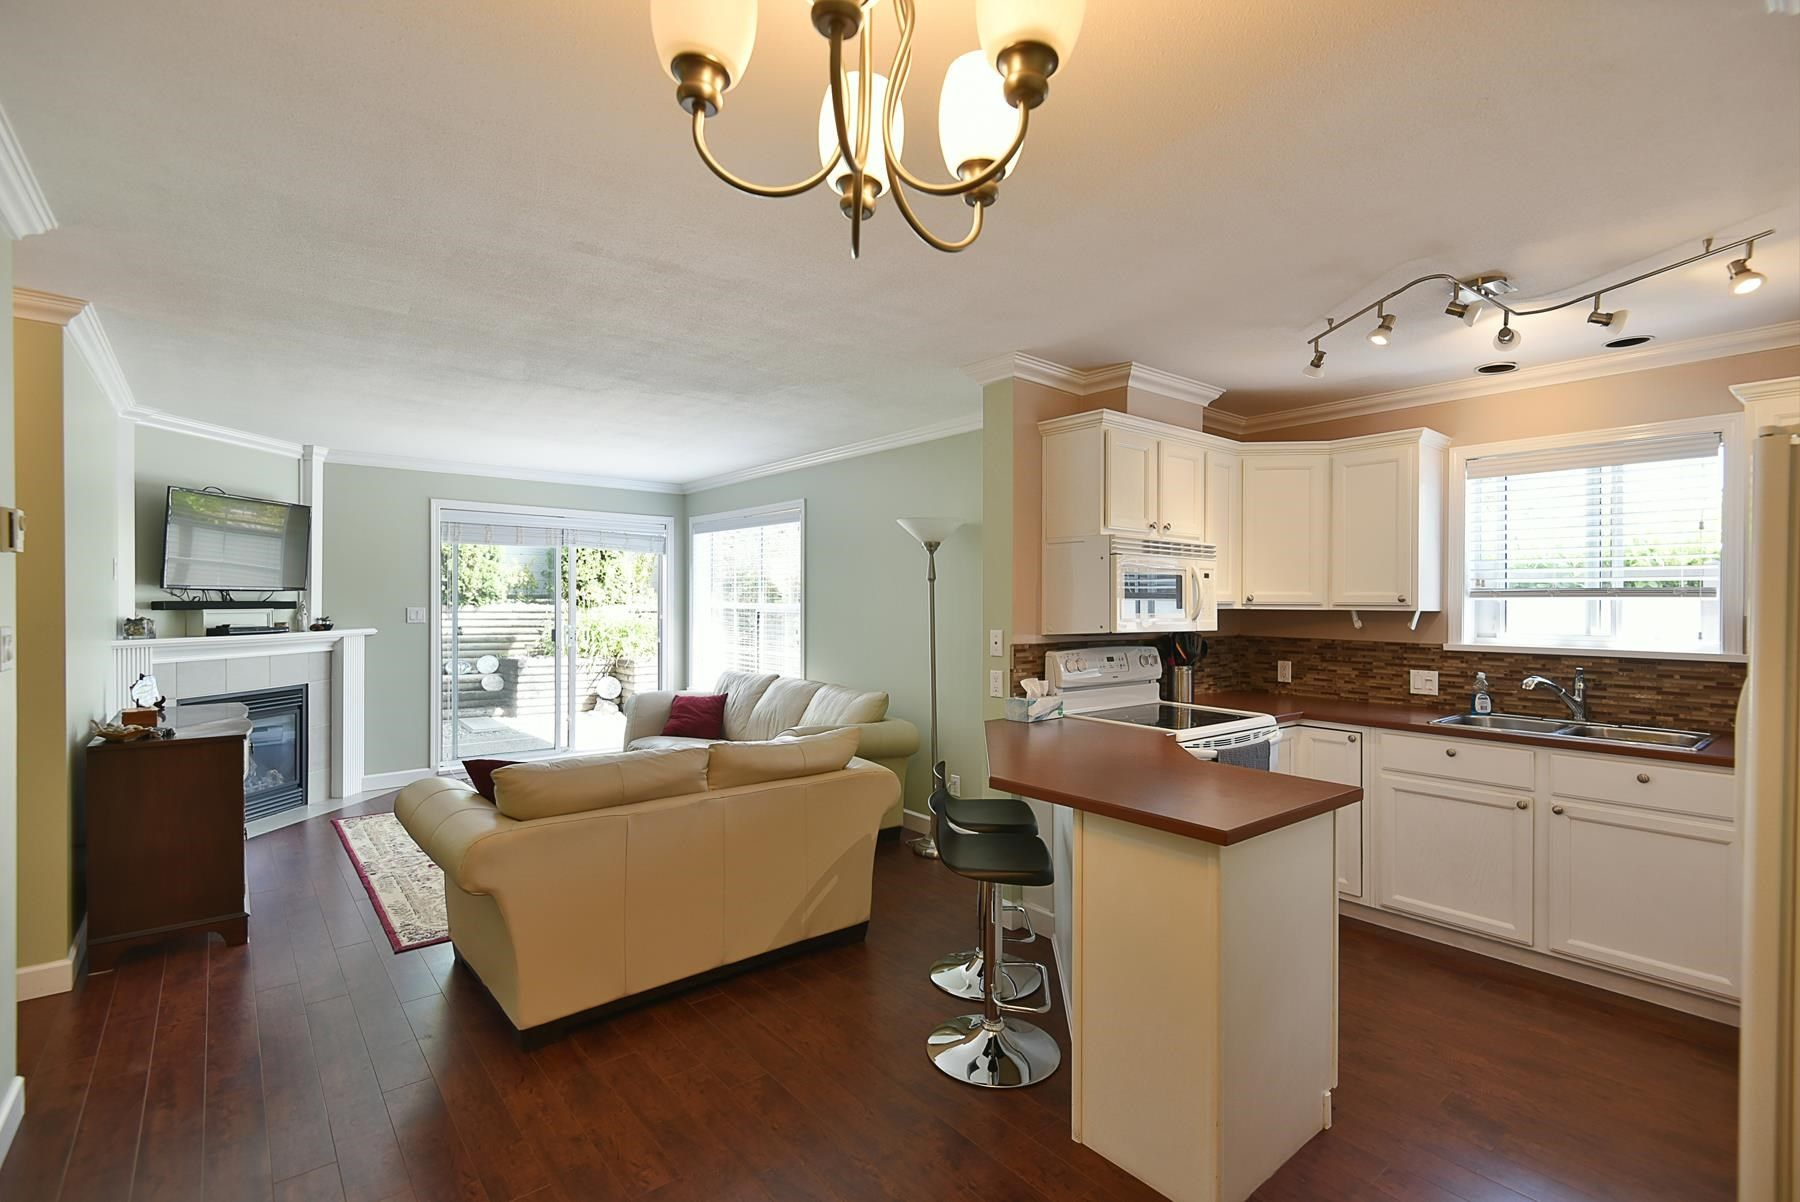 Main Photo: 2 689 PARK Road in Gibsons: Gibsons & Area Condo for sale (Sunshine Coast)  : MLS®# R2607792